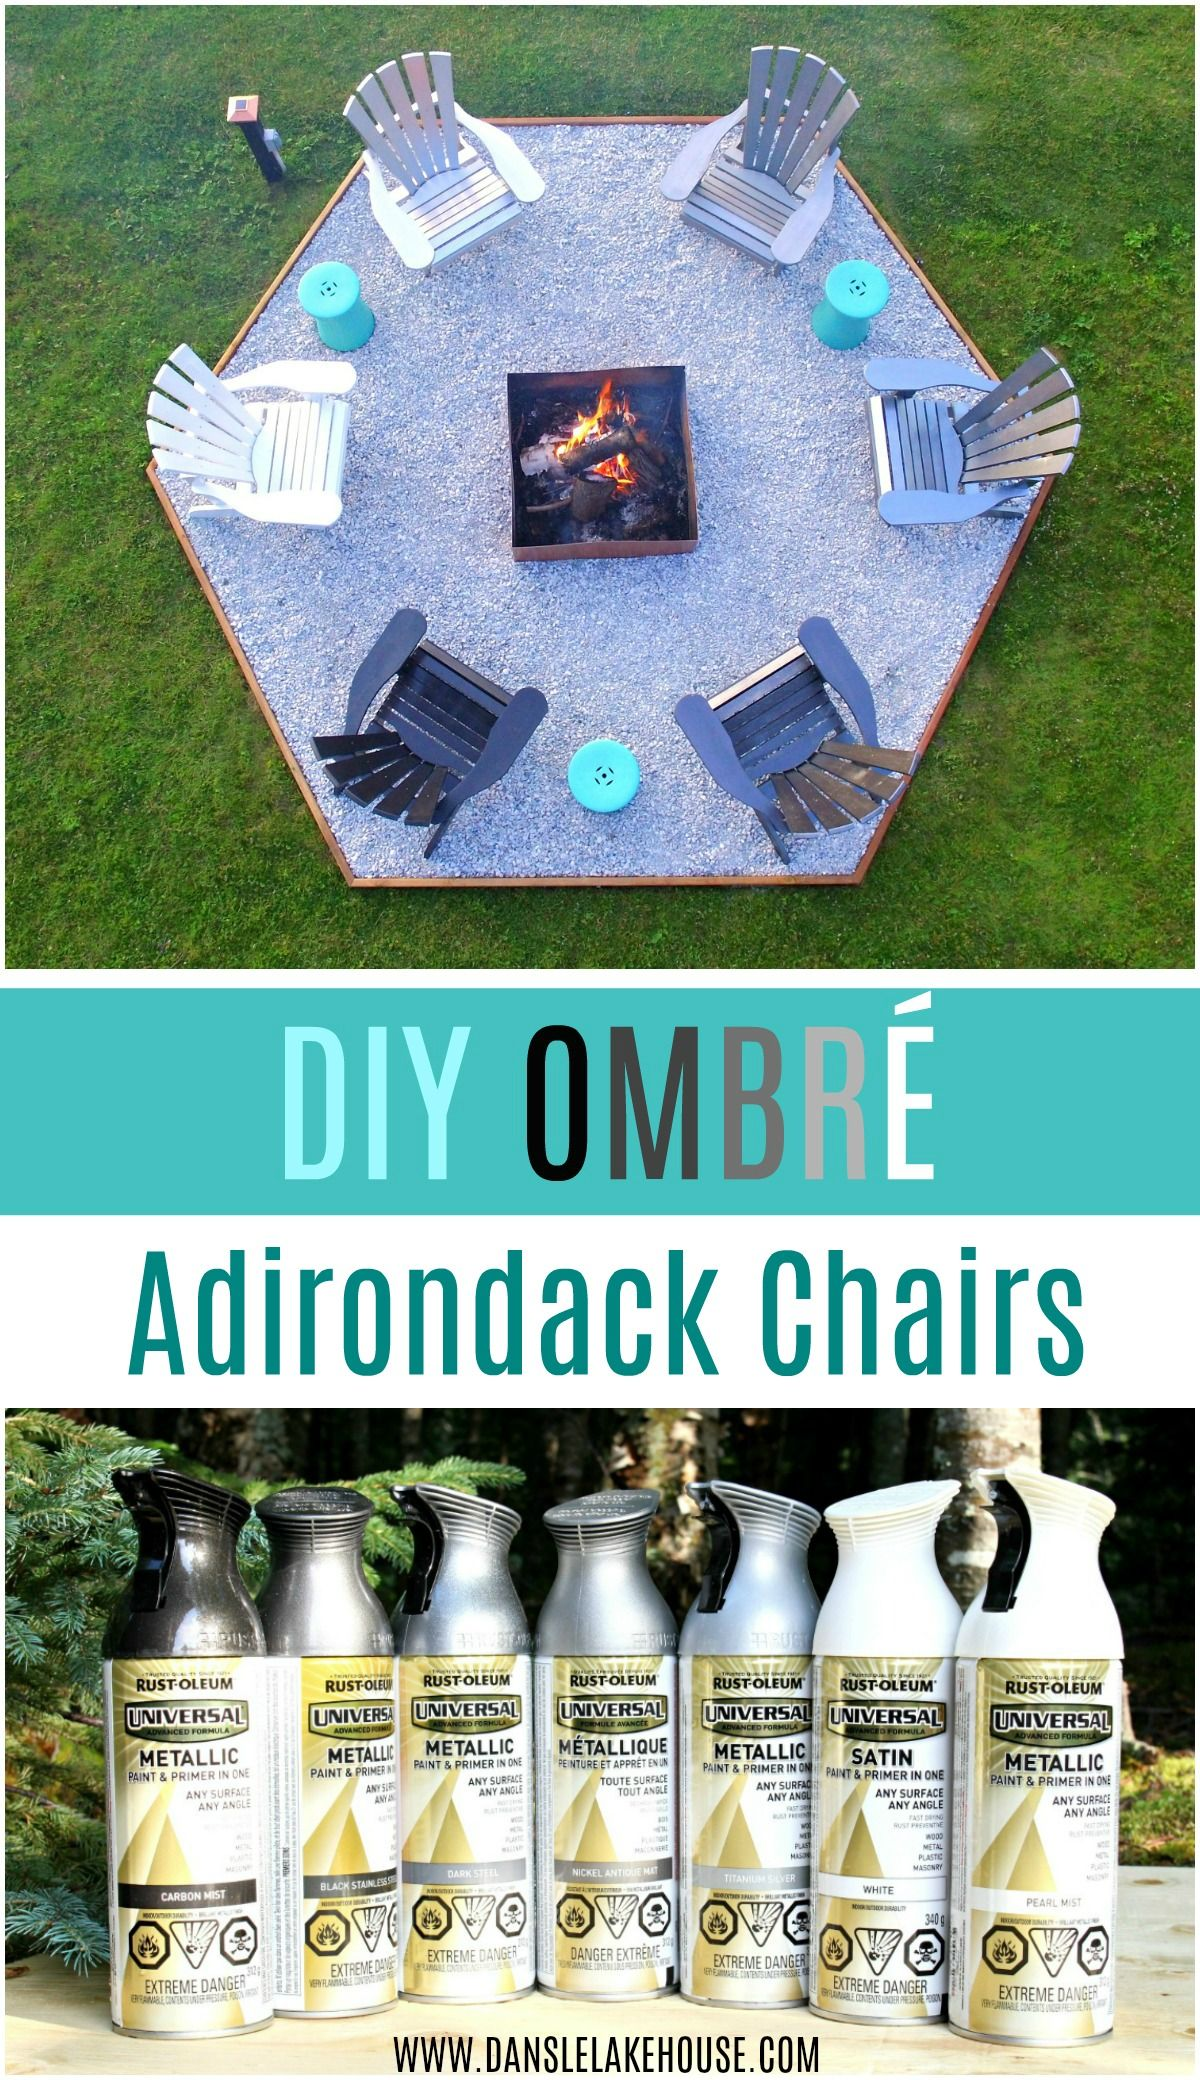 Fire Pit Makeover + DIY Ombre Adirondack Chairs (Sponsored by The Home Depot Canada) #diyfirepit